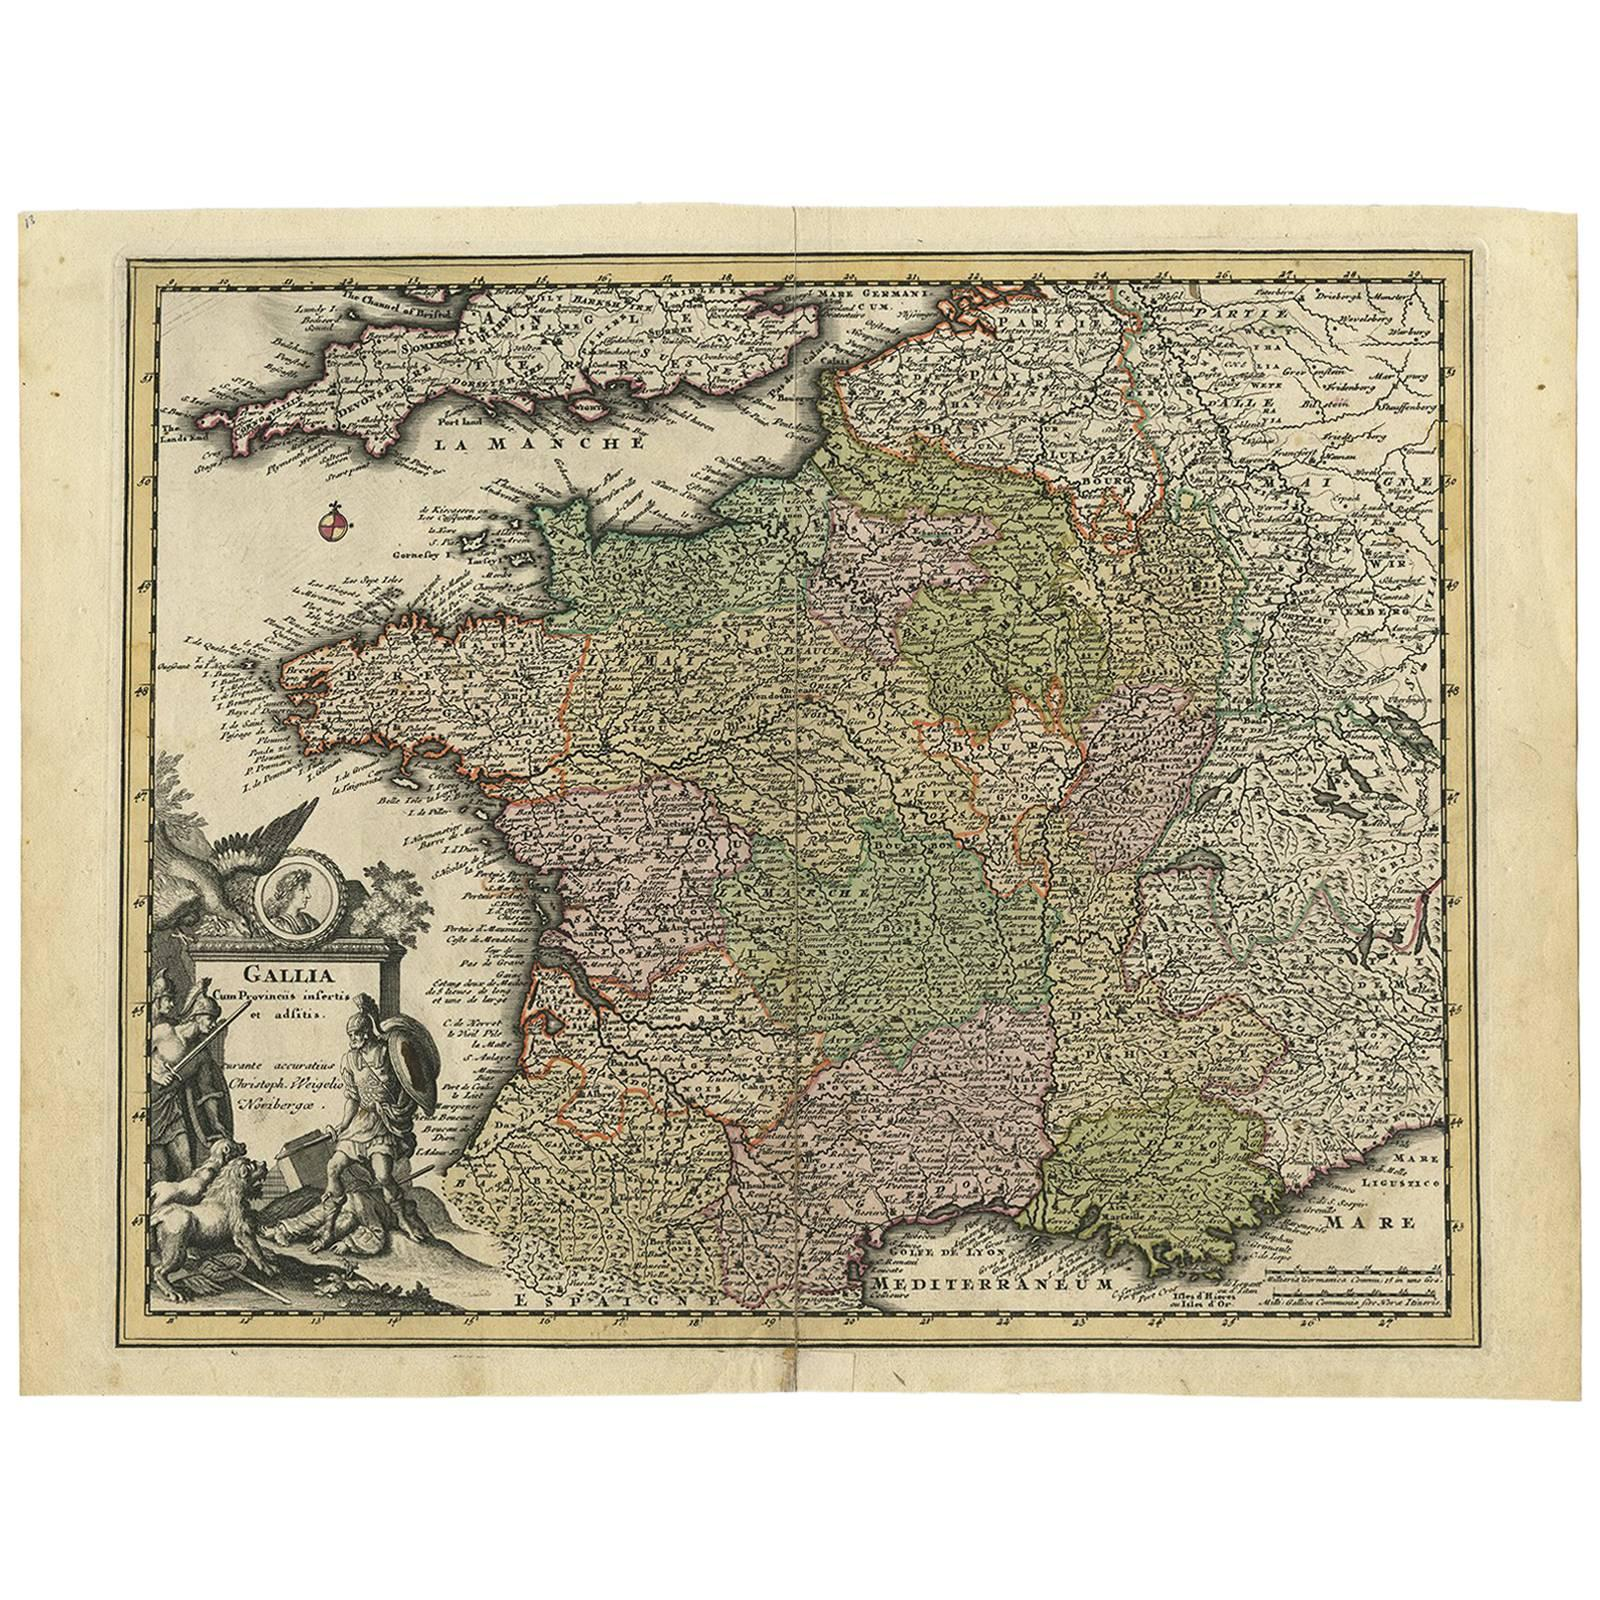 Antique Map of France by C. Weigel, 1719